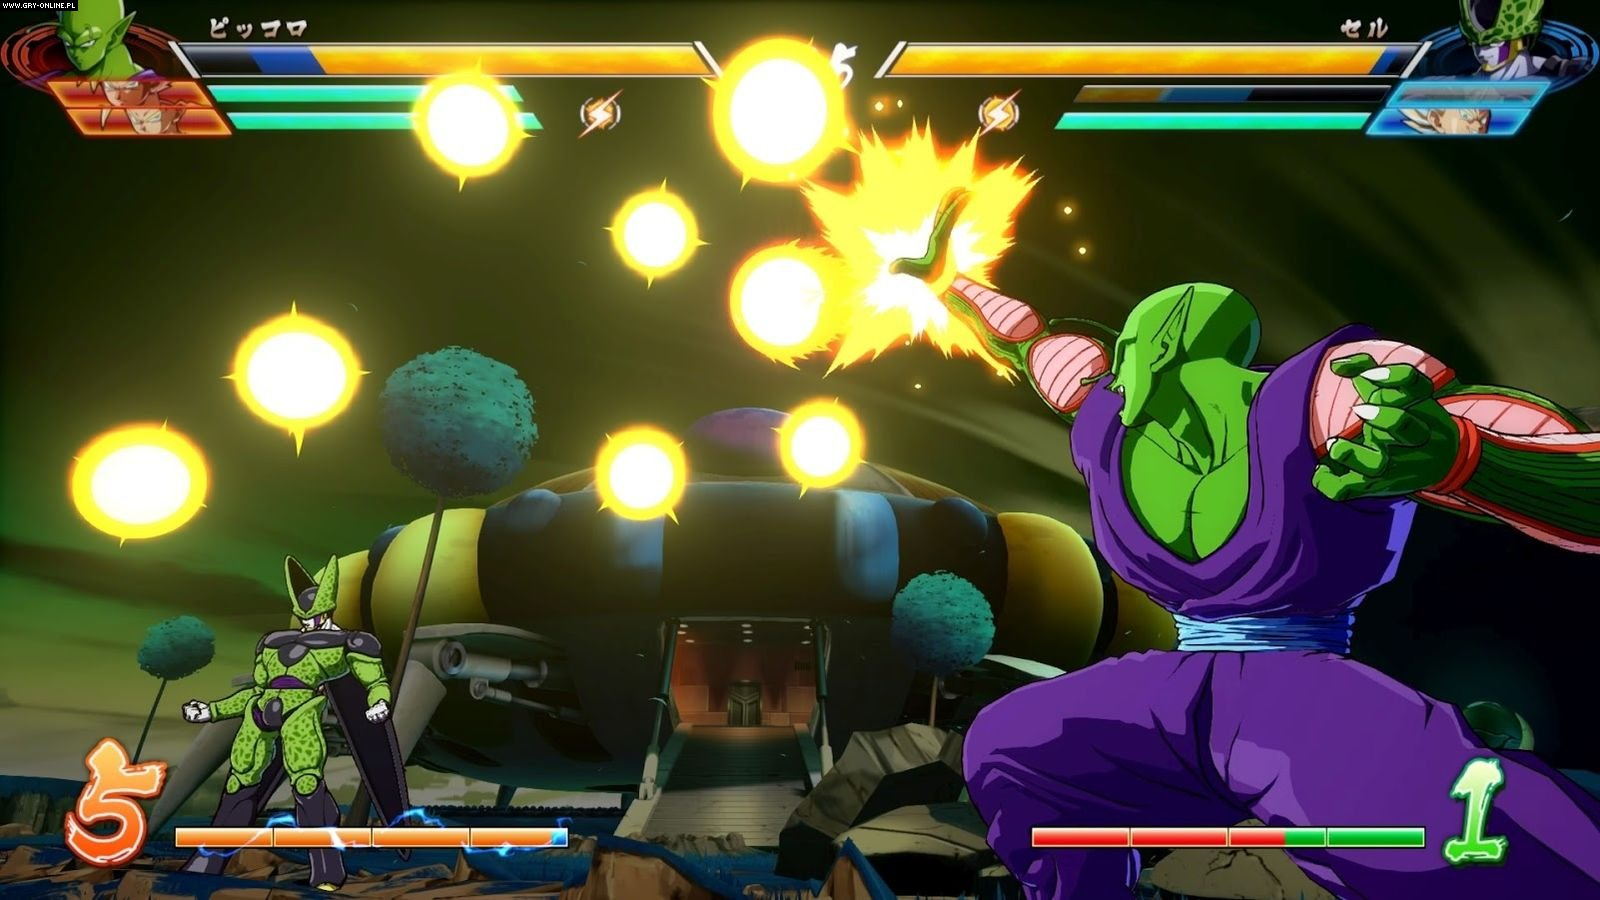 Dragon Ball FighterZ PC, PS4, XONE, Switch Gry Screen 213/230, Arc System Works, Bandai Namco Entertainment